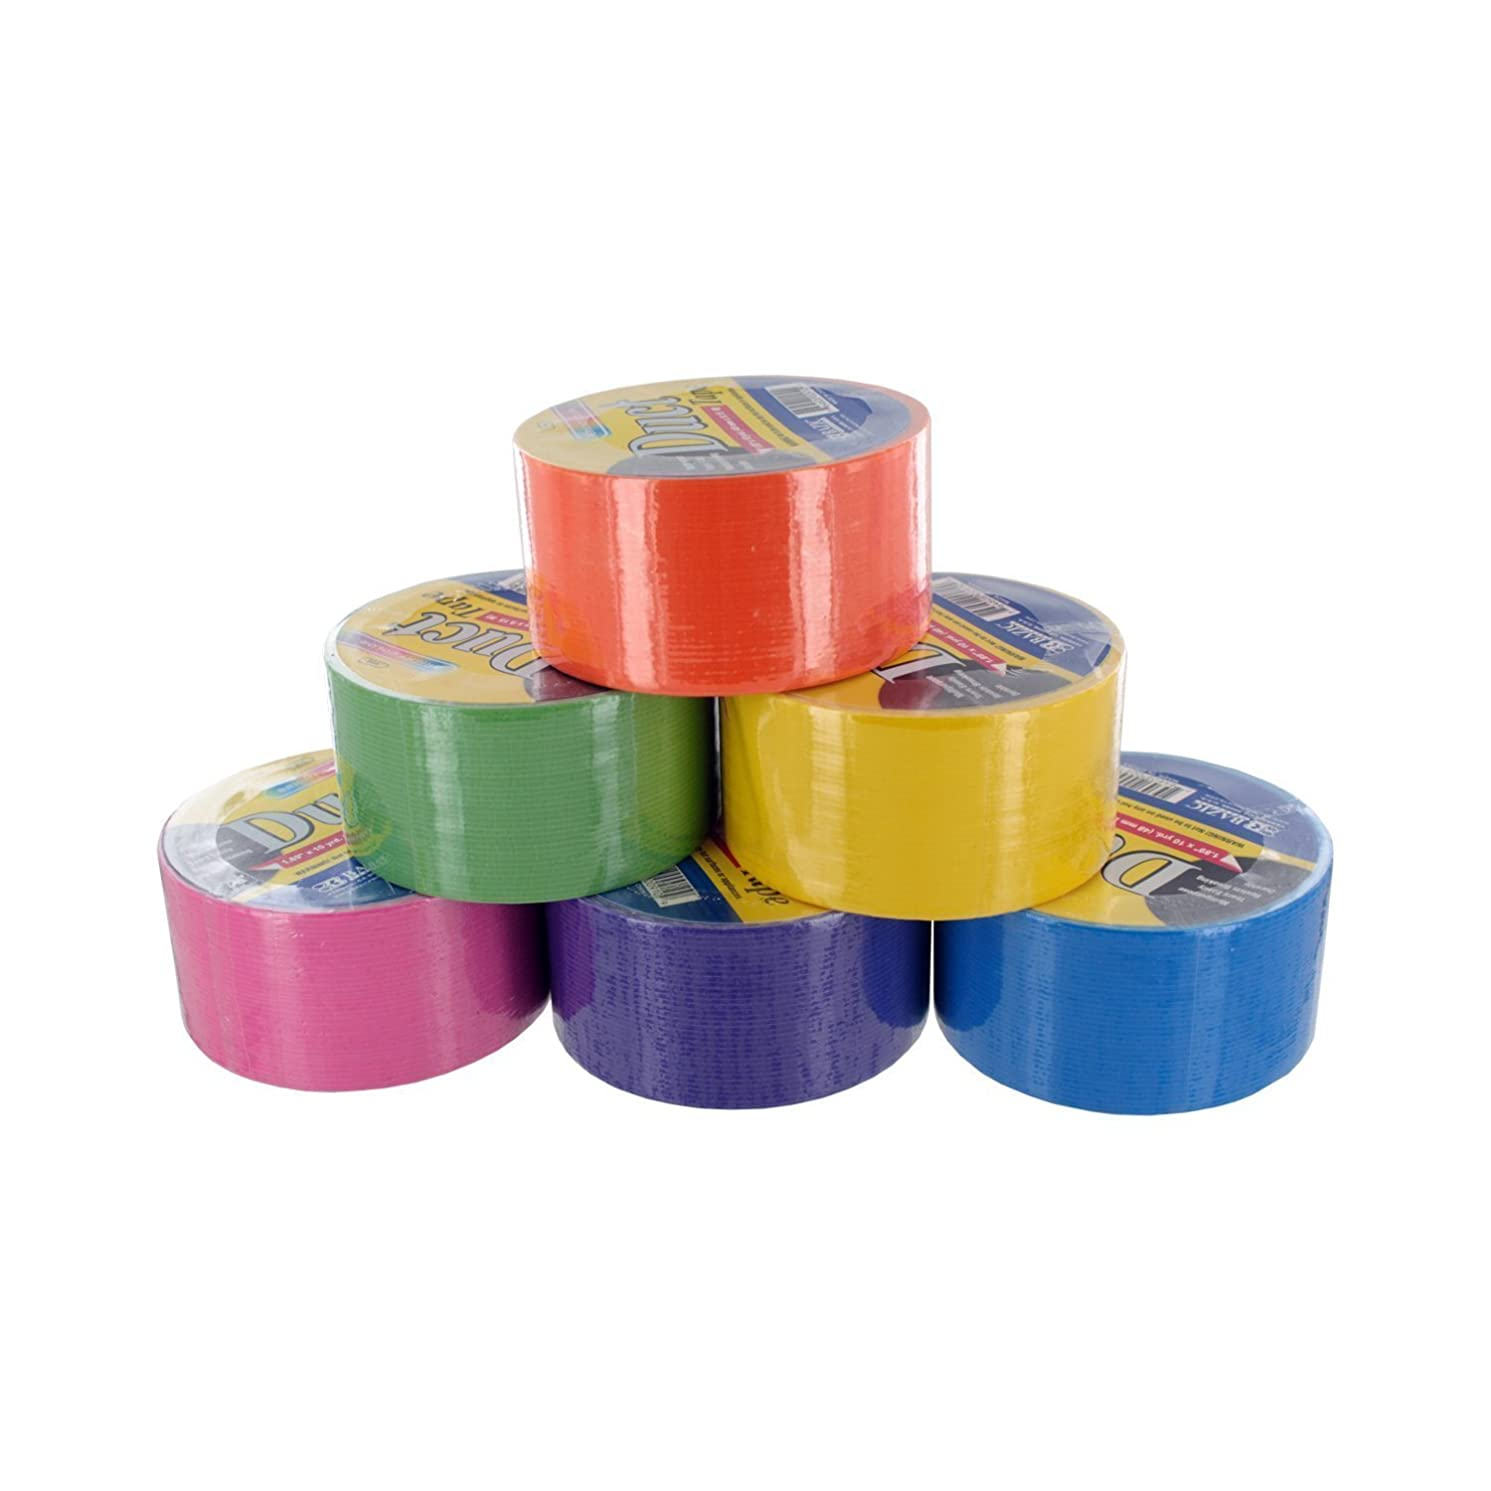 Bazic Fluorescent Colored Duct Tape, Assorted Colors, Pack of 6, 1.89-inch x 10 Yard